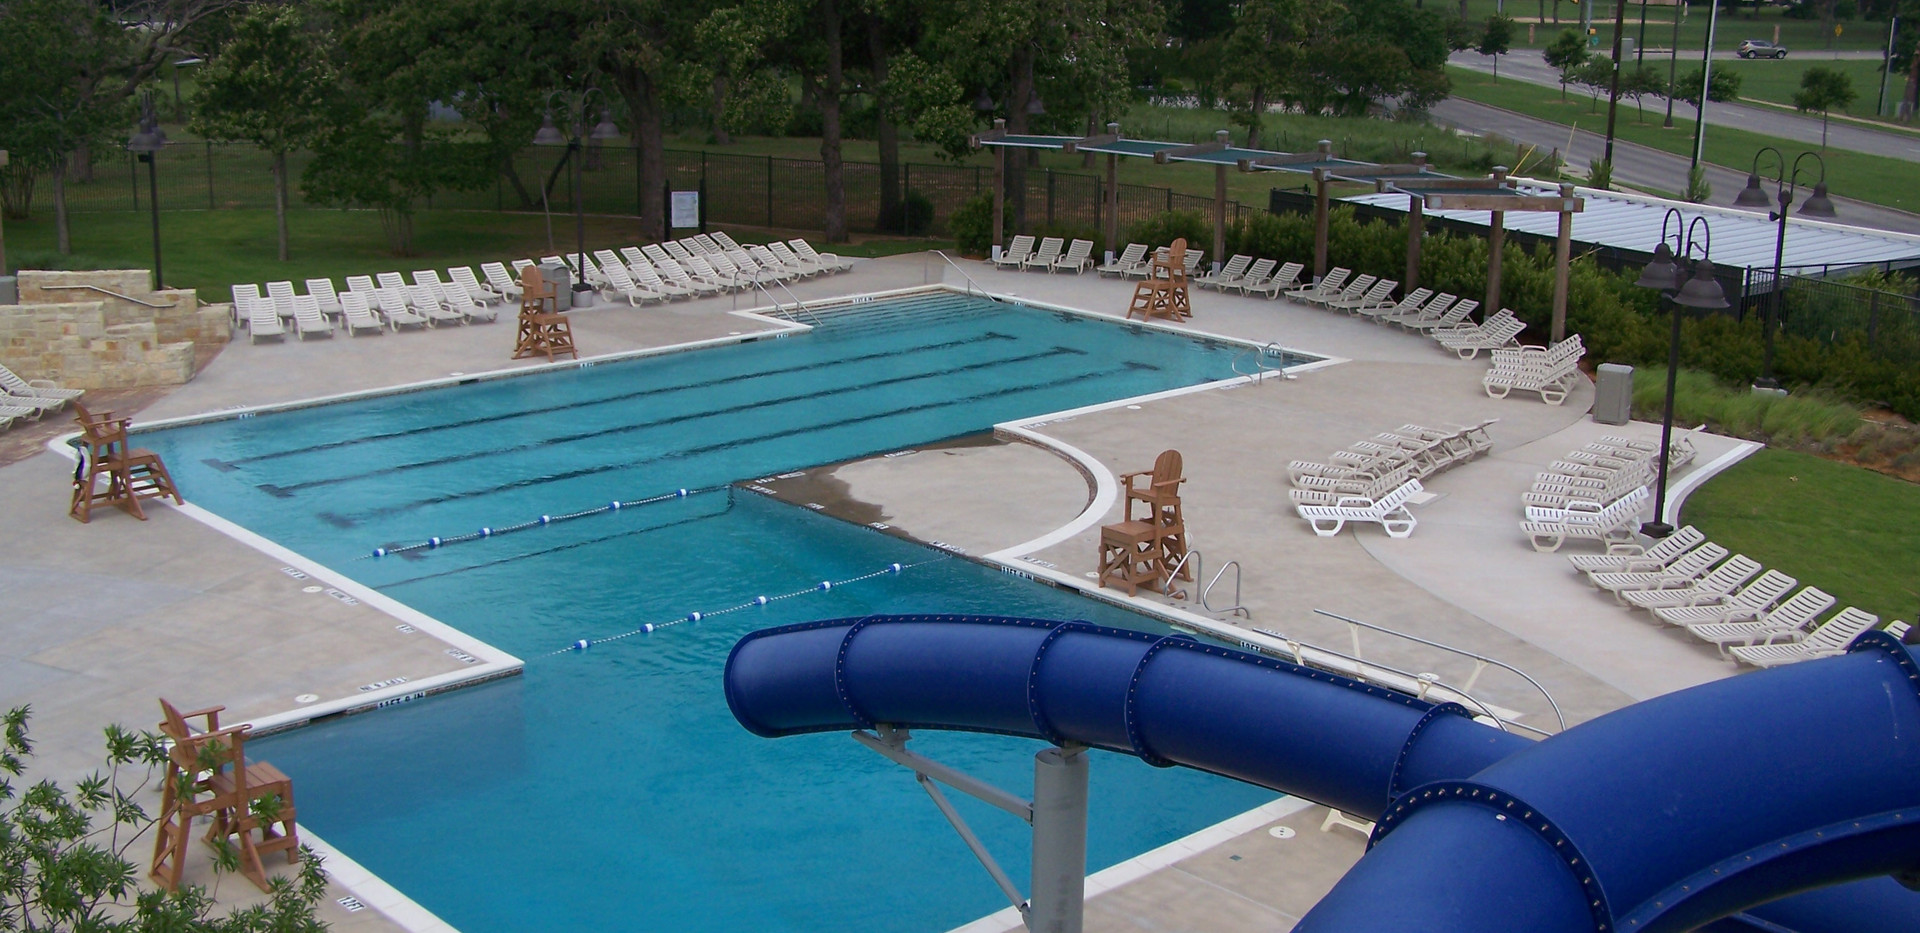 Bad Konigshofen - Family Aquatic Center | Frank Dale Construction